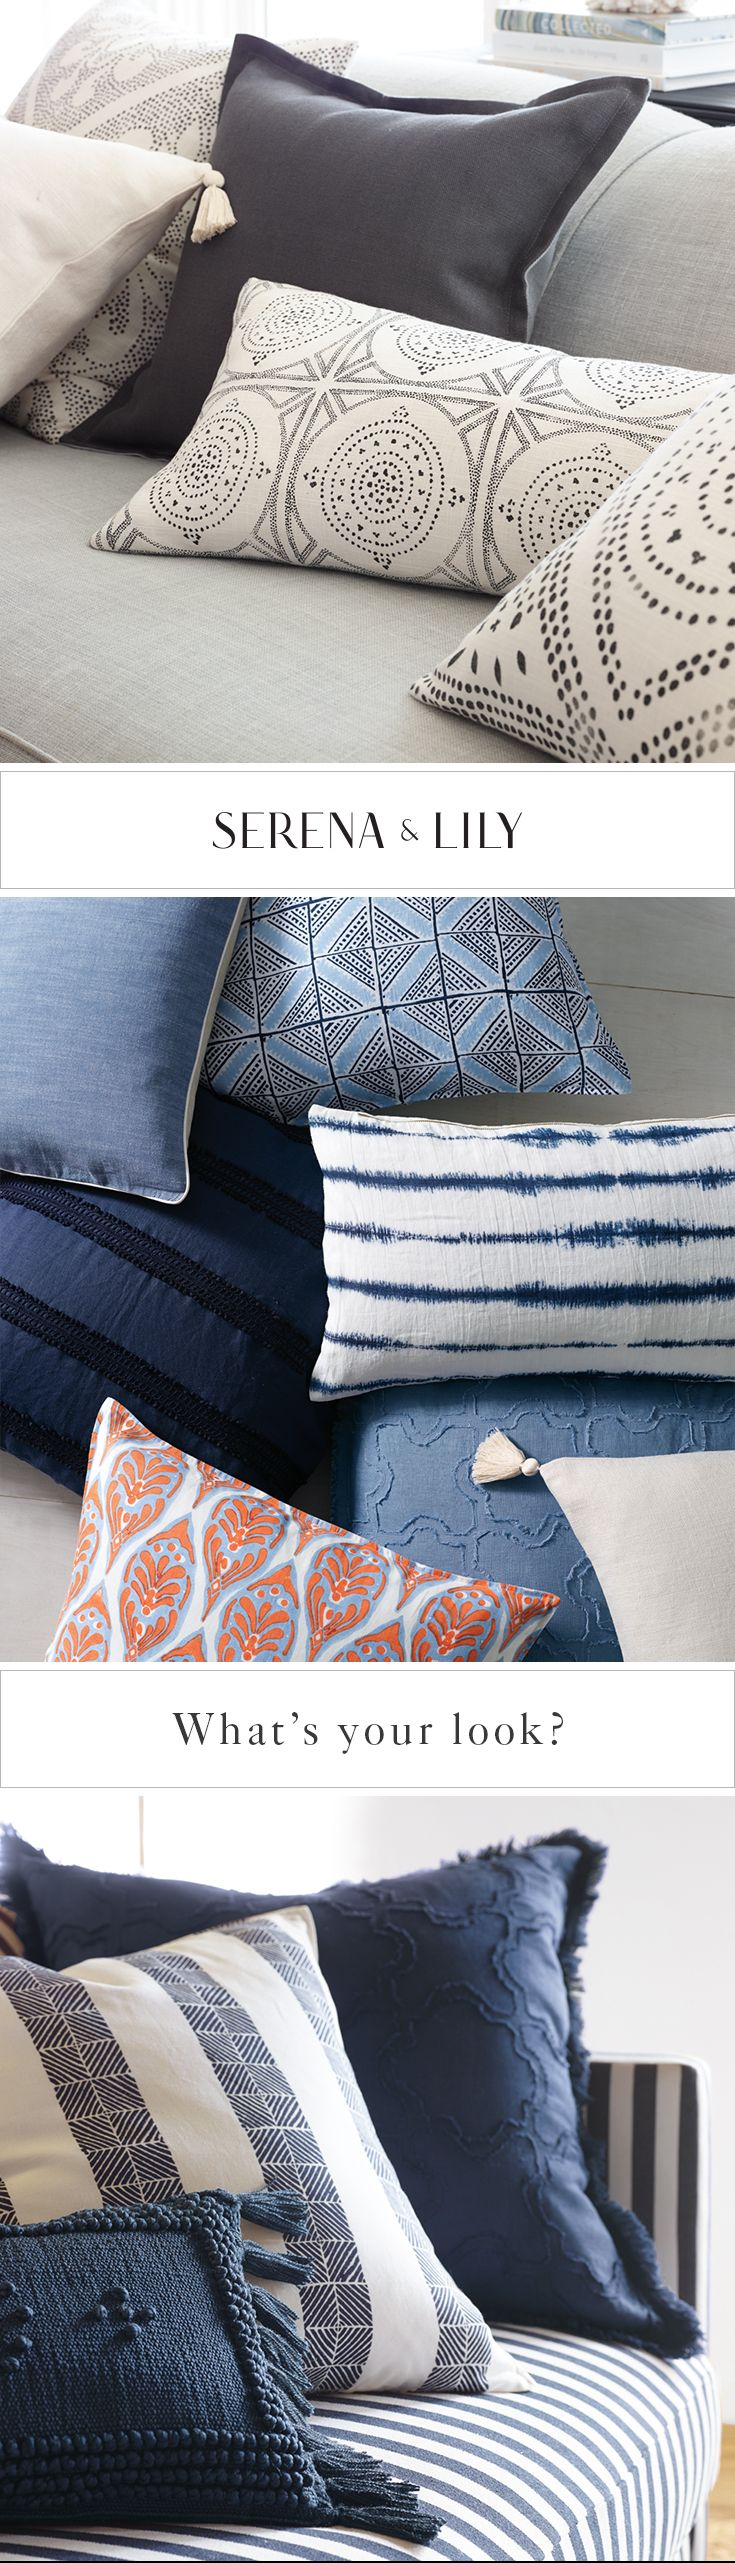 Set your foundation. Add texture. Make it pop. Explore all of our pillows and make combinations you will love.